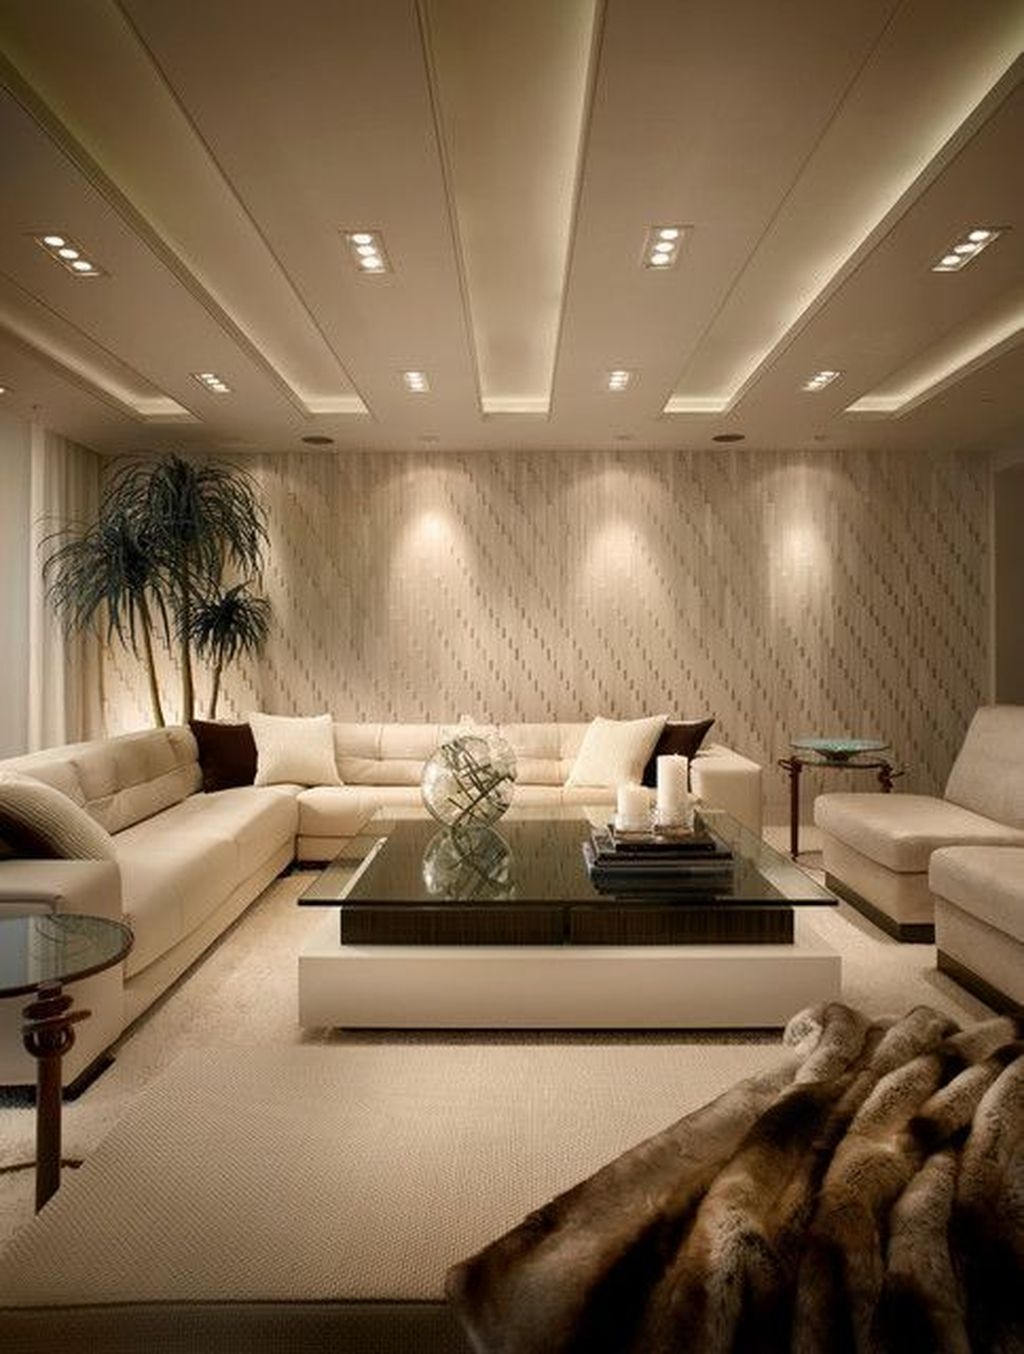 Cool Basement Living Room Design Ideas39